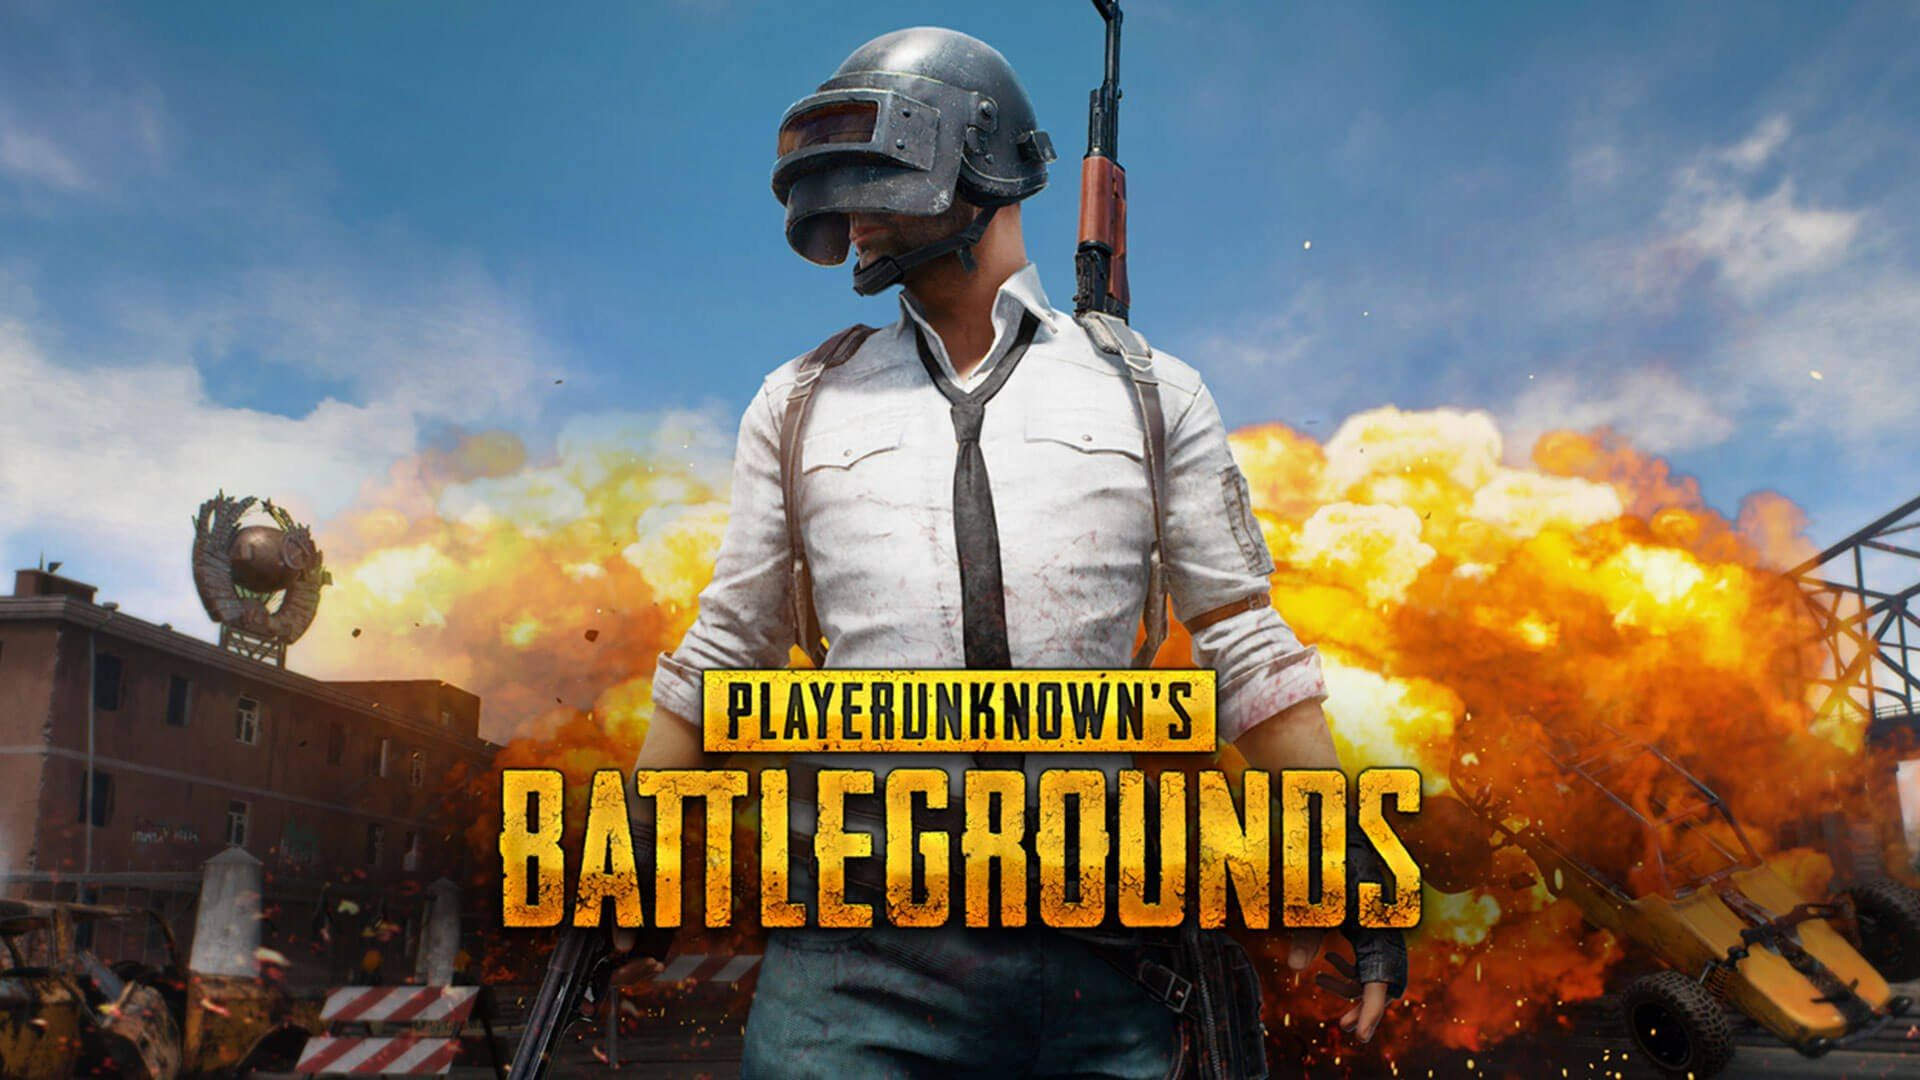 Download 84 Wallpaper Of Pubg For Pc Foto HD Paling Keren